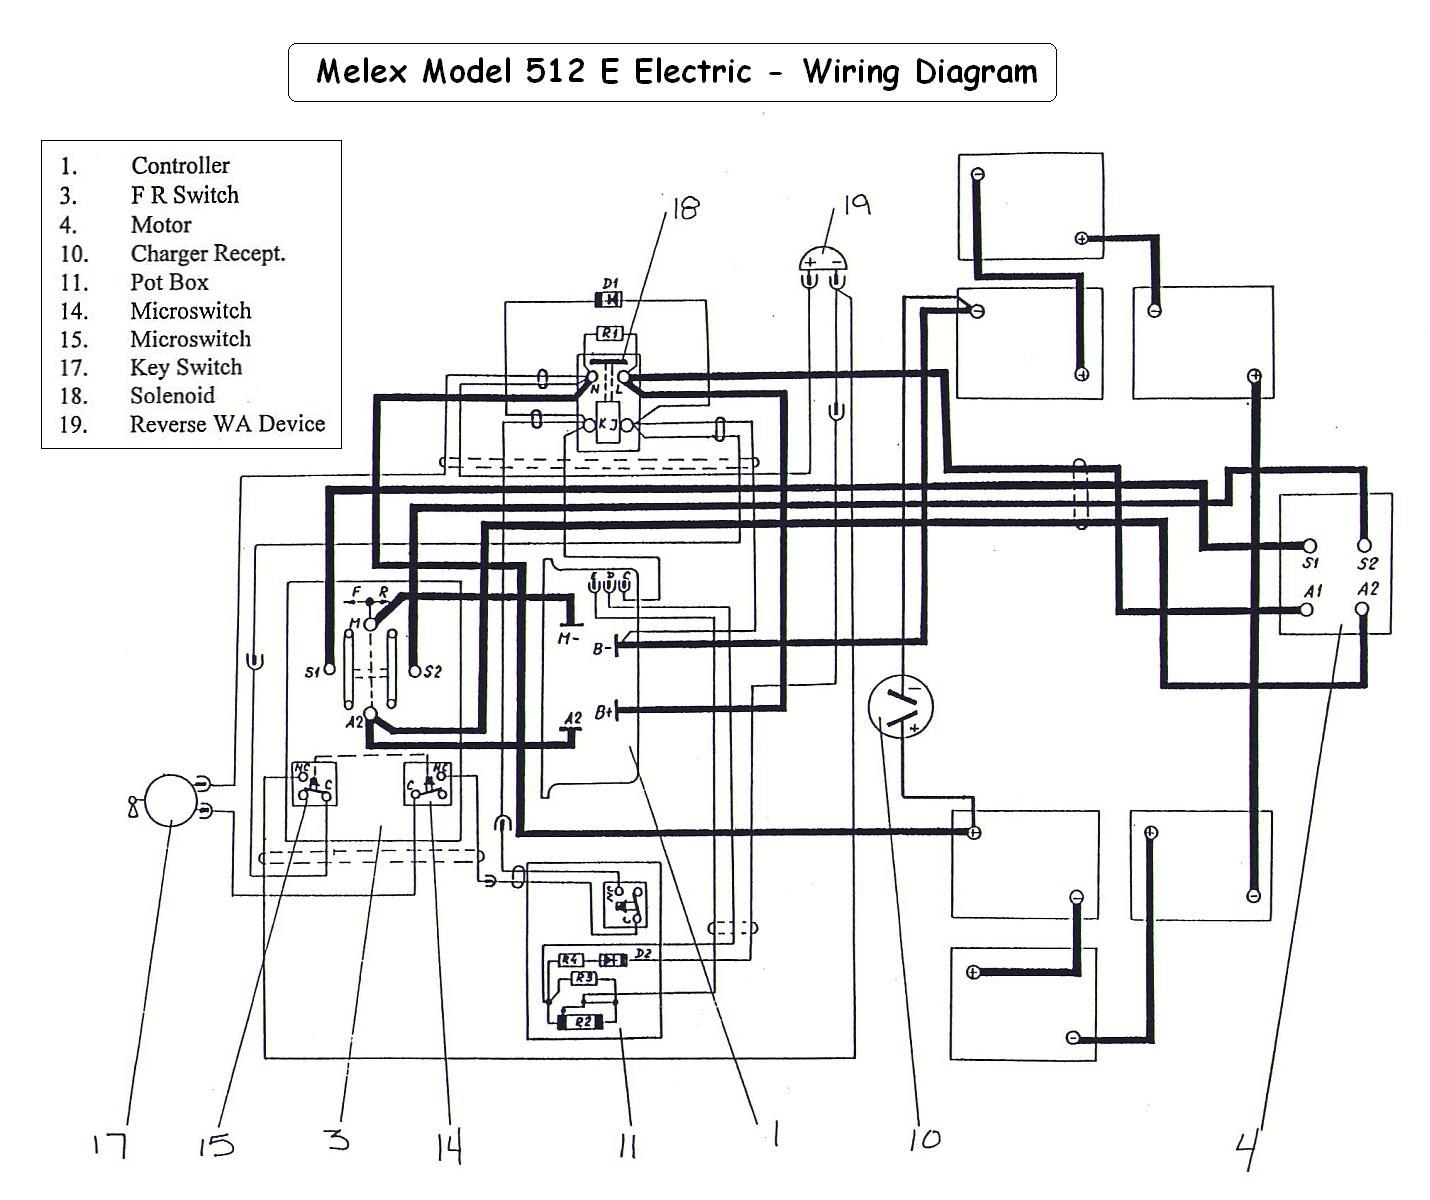 Melex512E_wiring_diagram vintagegolfcartparts com golf cart wiring diagram ezgo at n-0.co